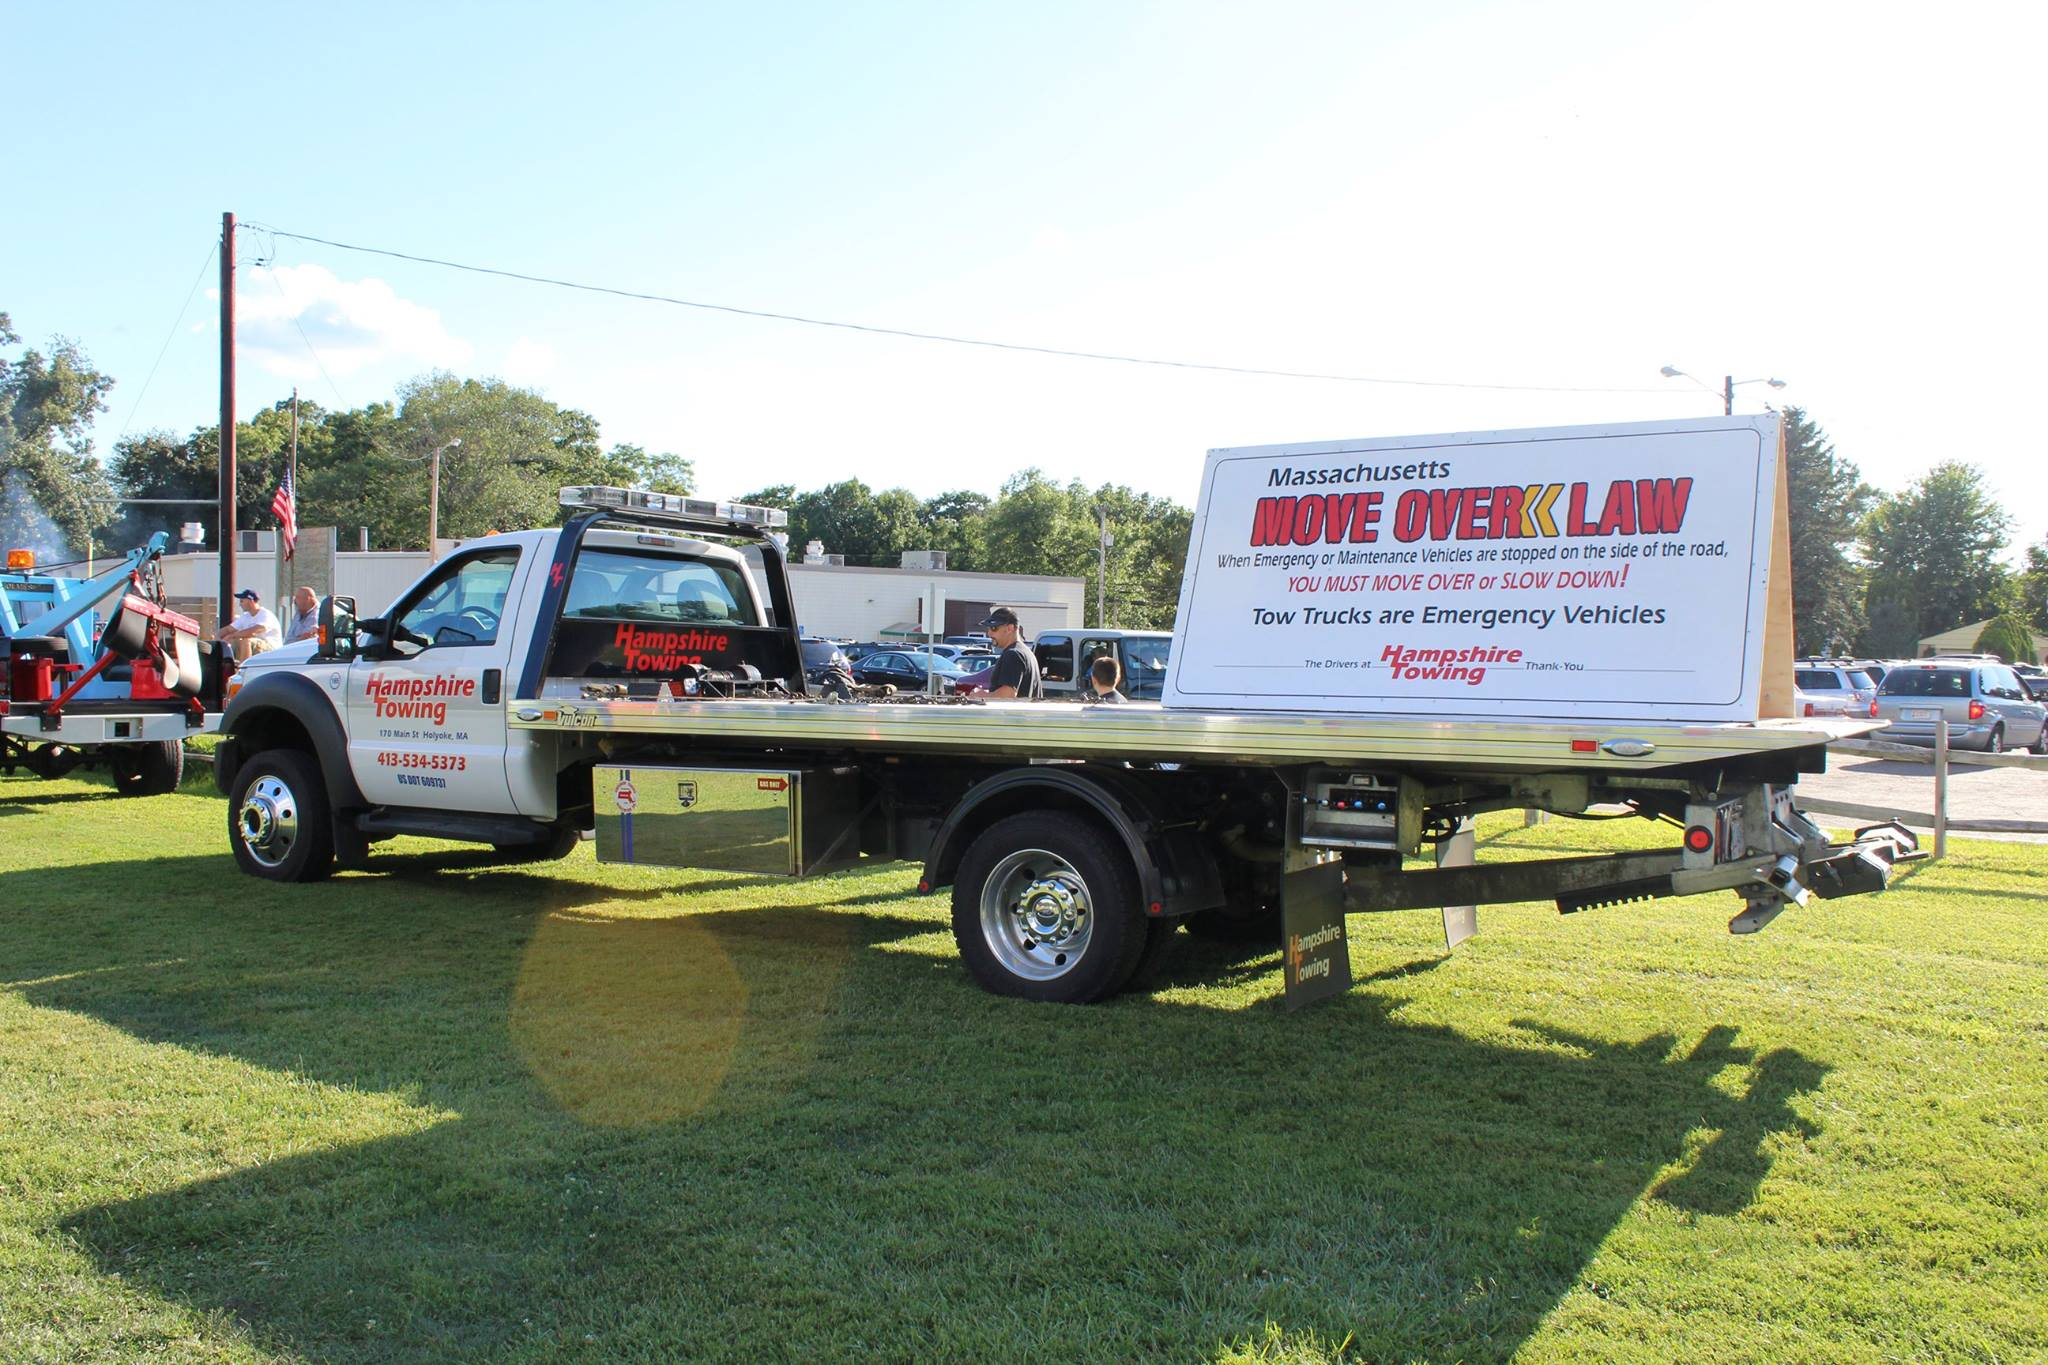 Hampshire Towing - Move Over Law